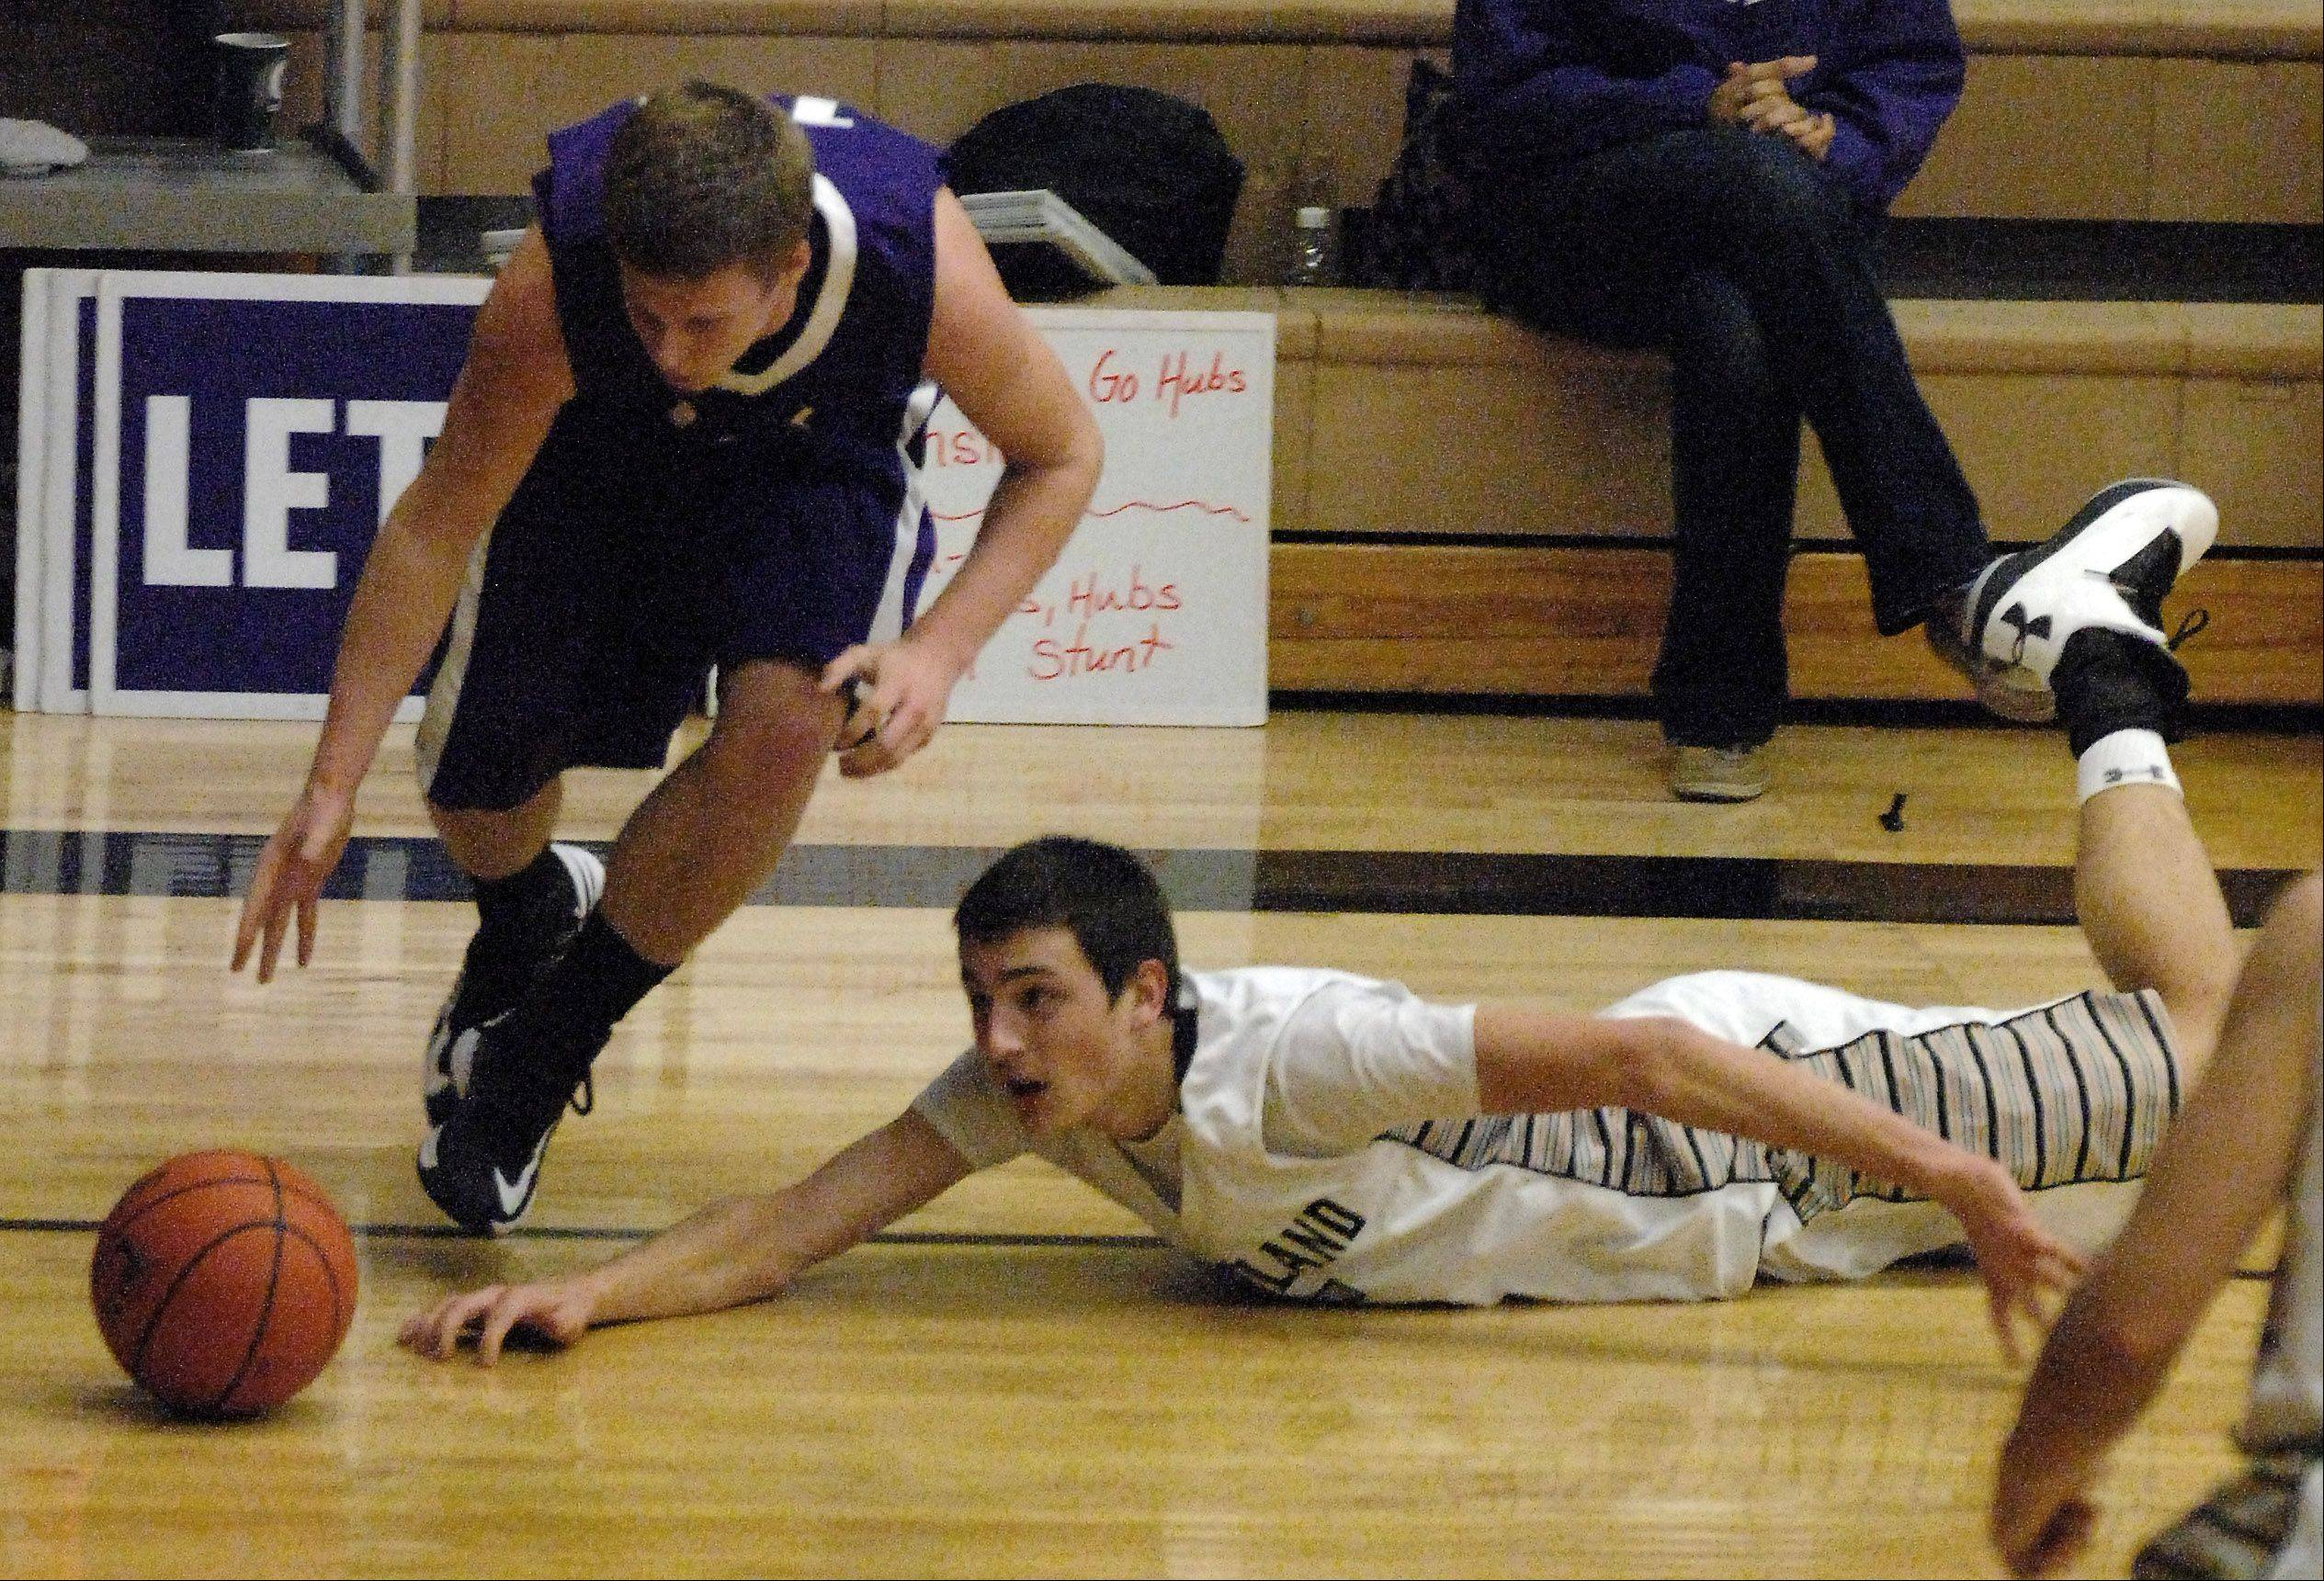 Kaneland's John Pruett dives for a loose ball that was controlled by Rochelle's Luke Manning during Thursday's game in Maple Park.